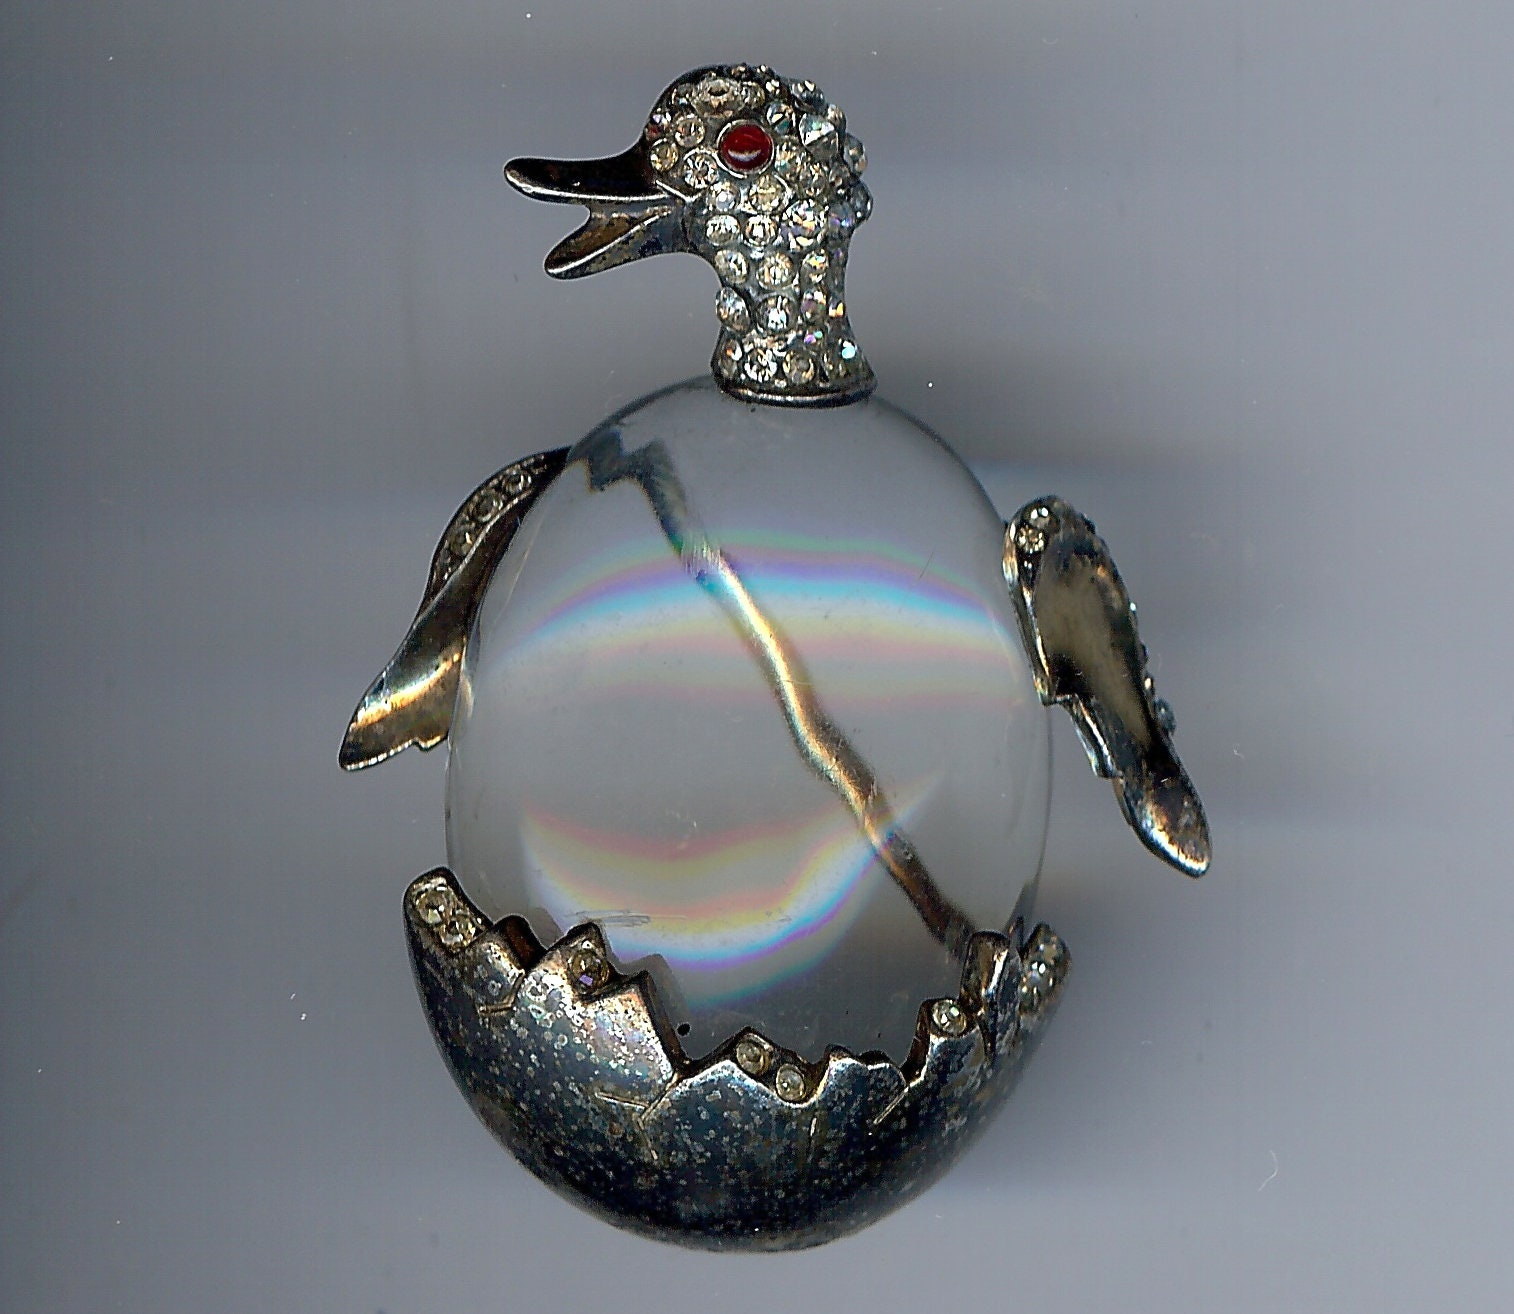 Vintage 1940s Rhinestone Eye Duck Jelly Belly Trifari-style Sterling Silver Brooch Pin Clear Lucite RARE